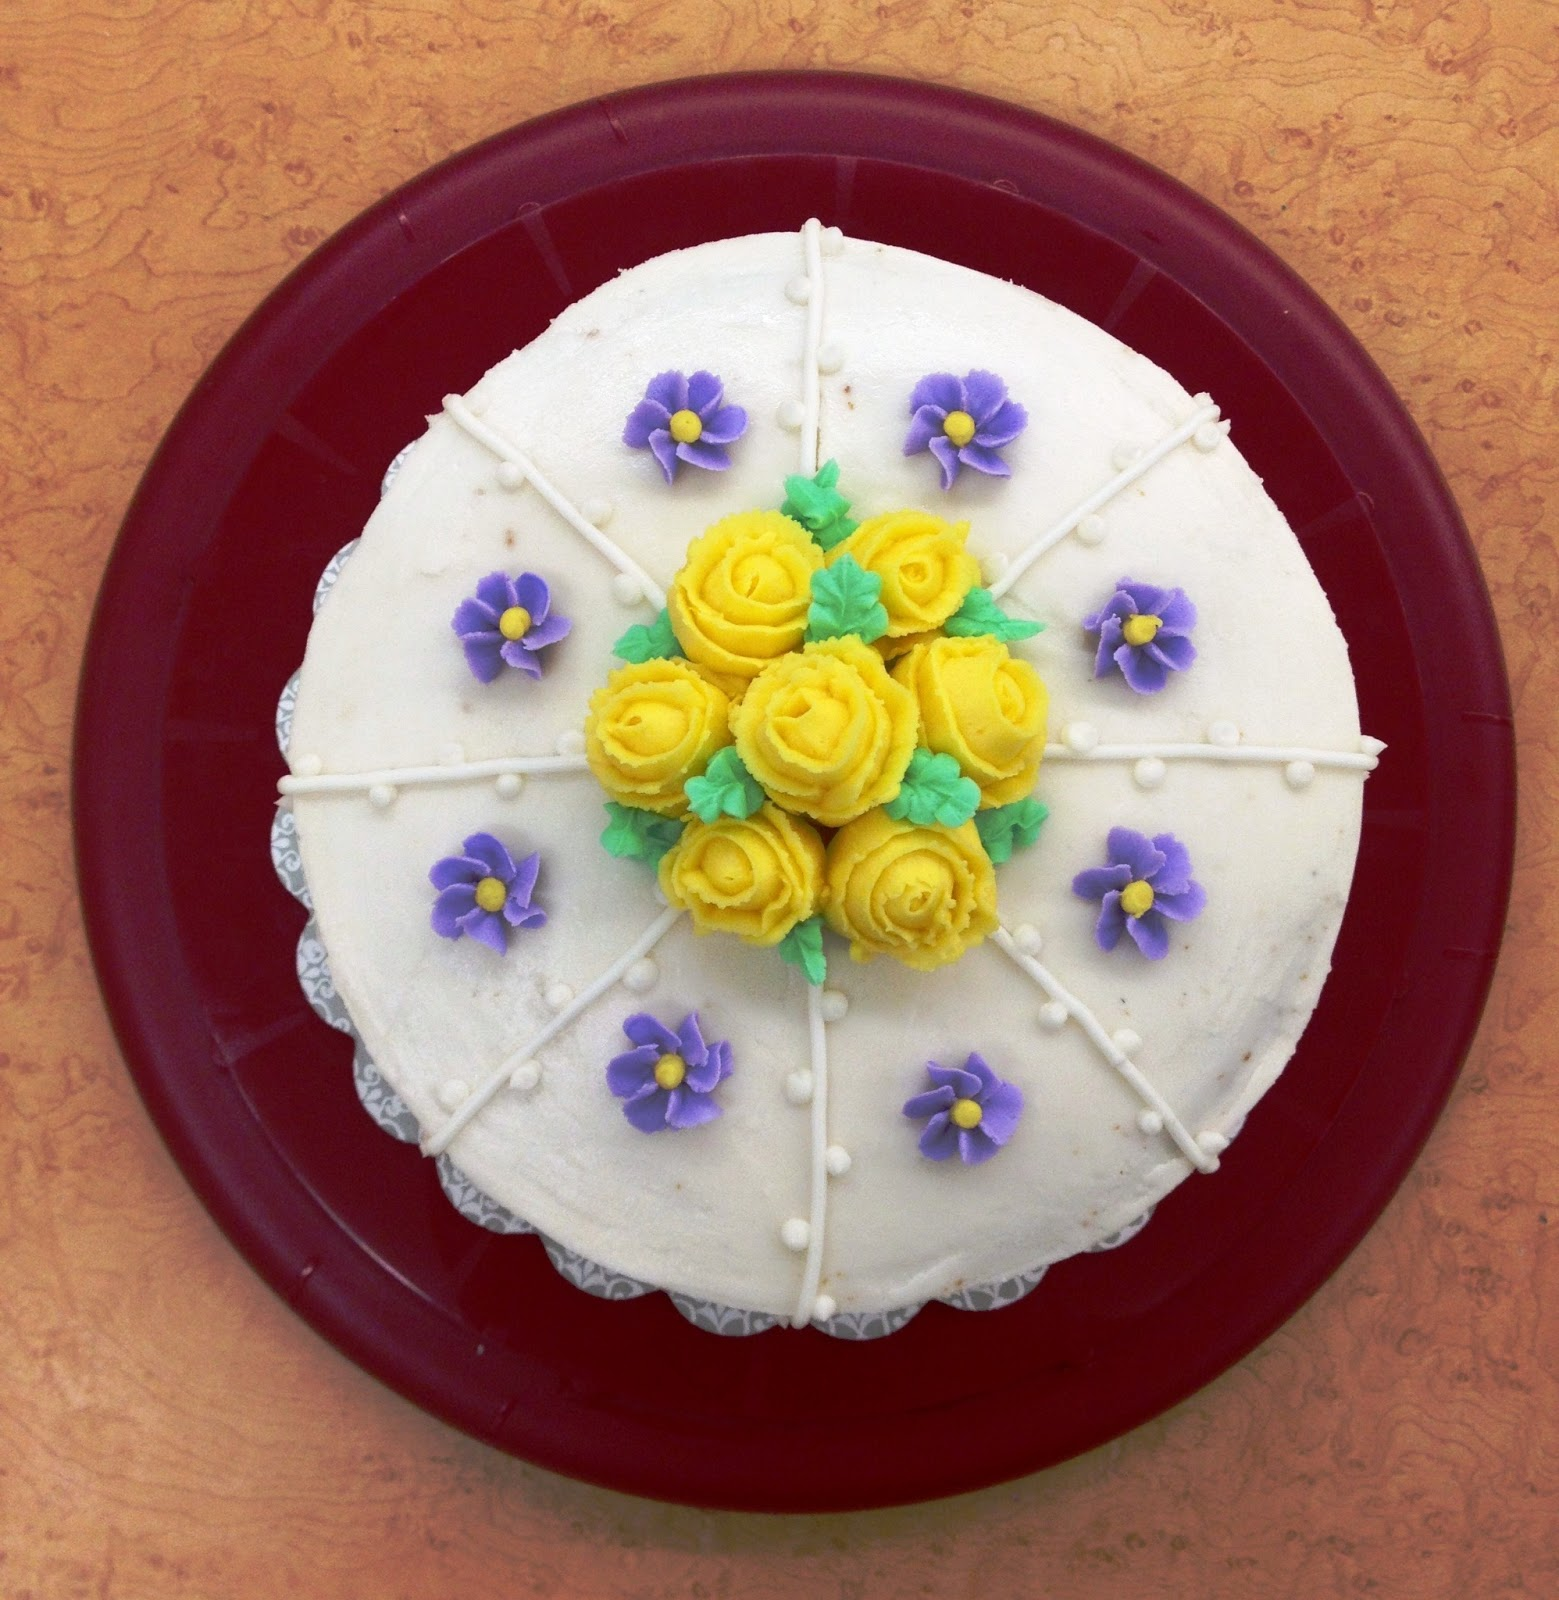 Cake Decorating Course Albury Wodonga : Shamples > Samples of Shell: Wilton s Cake Decorating ...